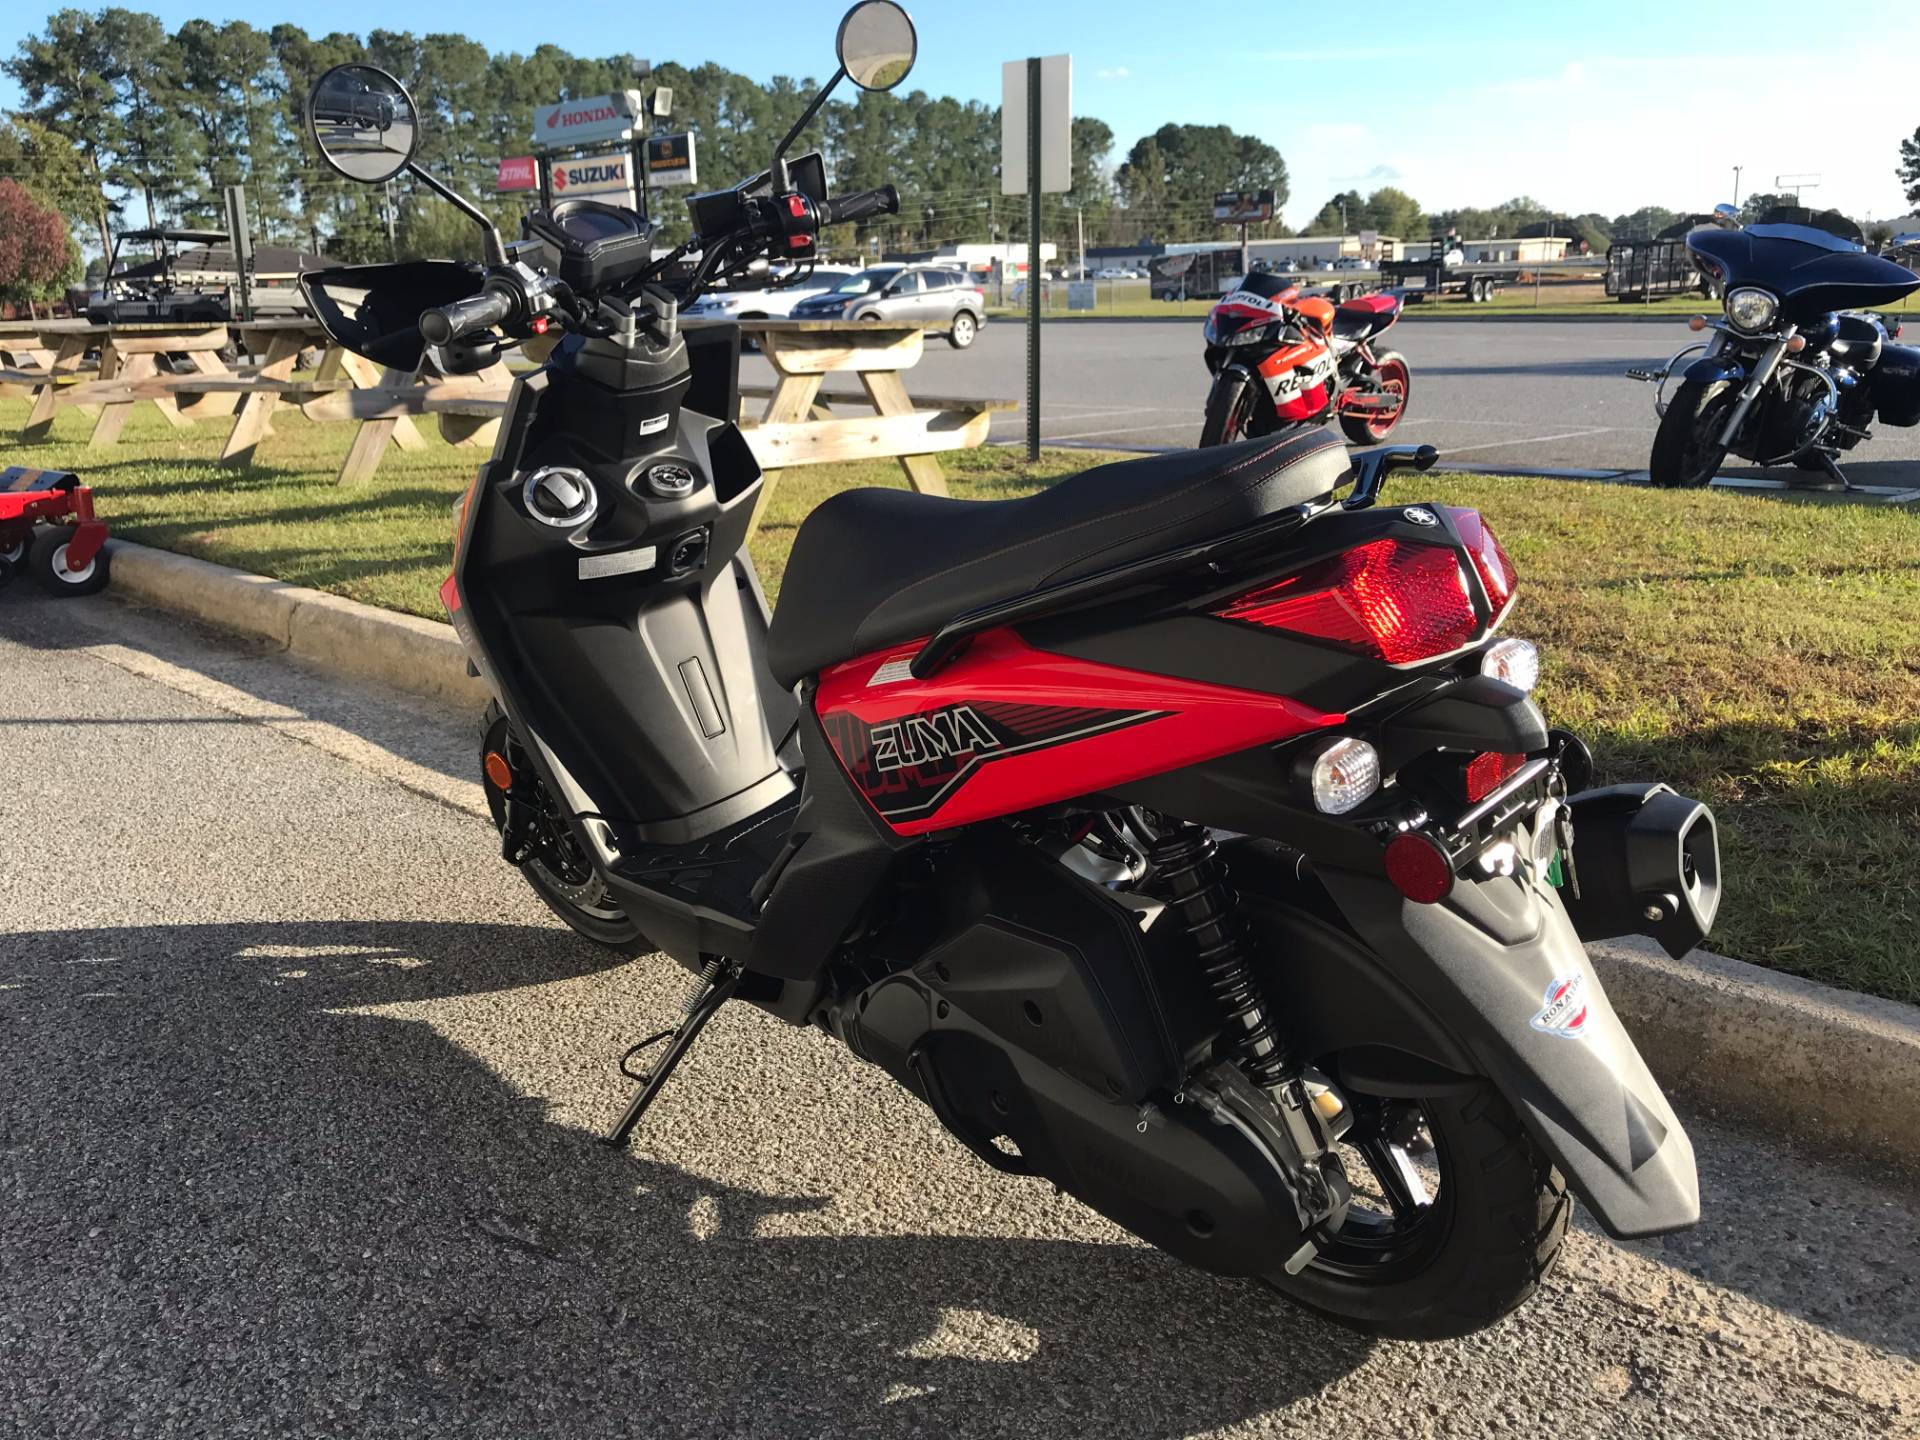 2018 Yamaha Zuma 125 in Greenville, North Carolina - Photo 8